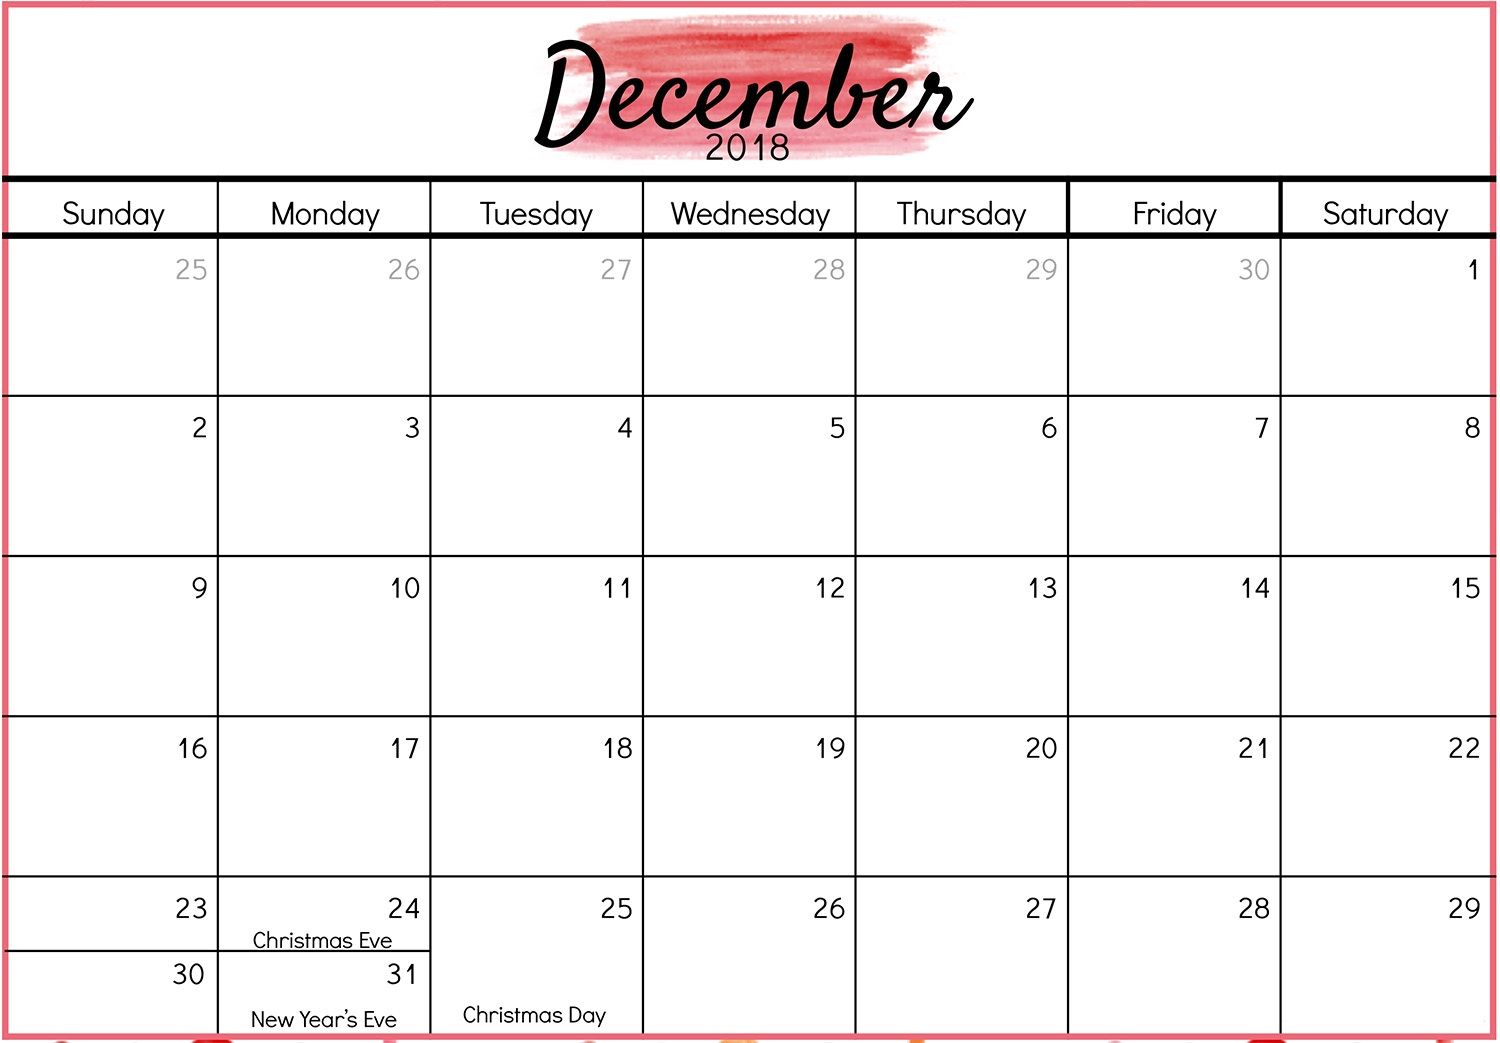 graphic relating to Printable December Calendar With Holidays titled December 2018 Calendar General public and Countrywide Vacations